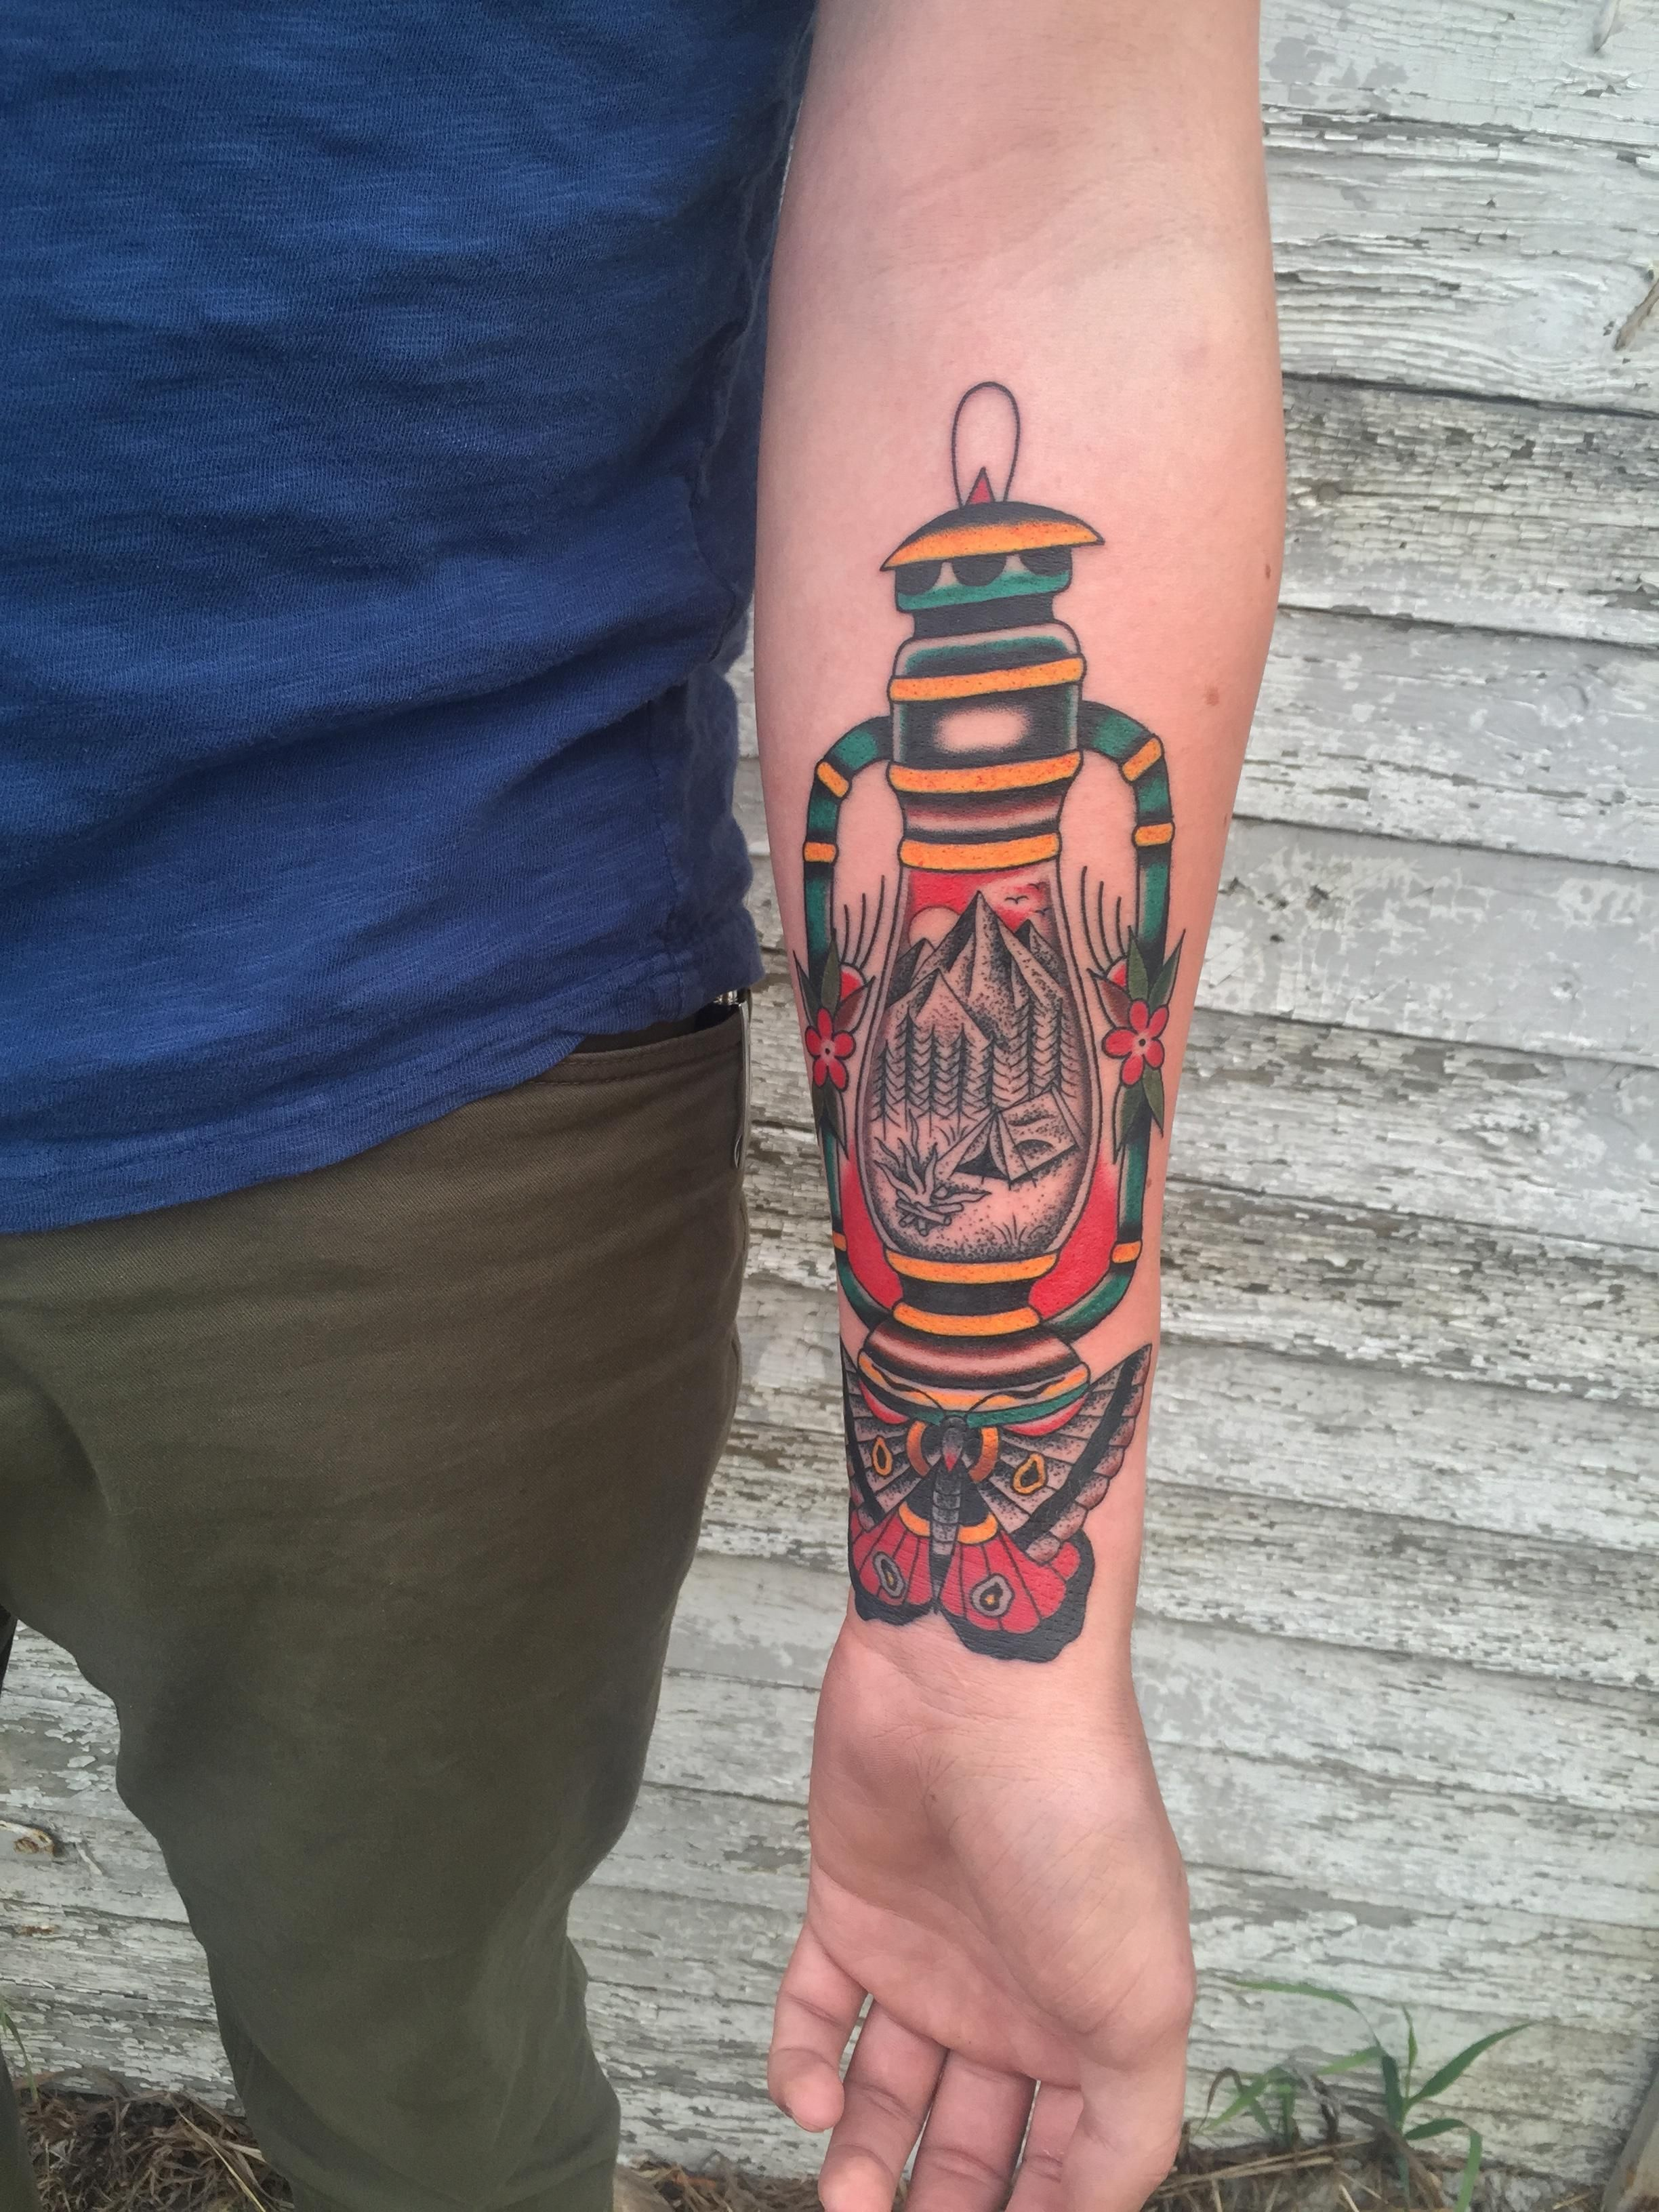 Lantern By Nick Luit At Scythe And Spade Tattoo In Calgary Ab Spade Tattoo Tattoos Cool Tattoos